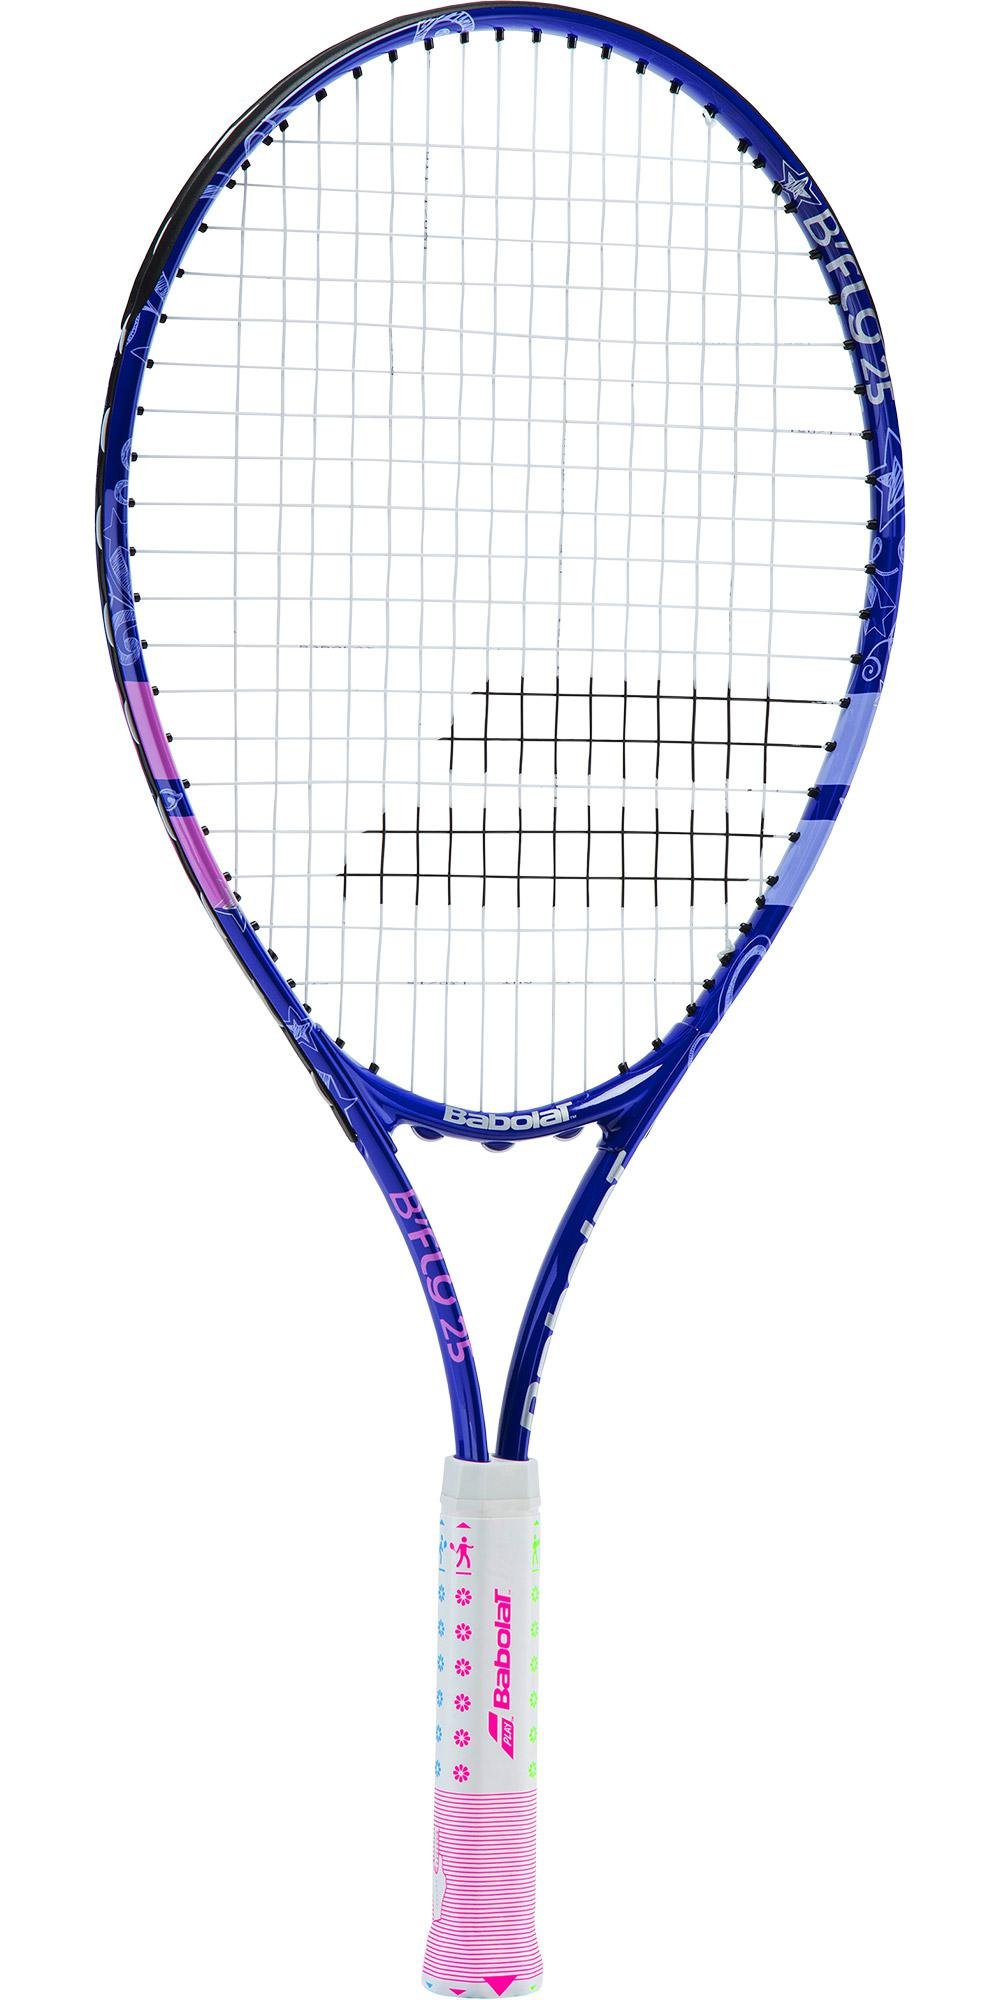 Babolat B'Fly 21'' Inch Child's Tennis Racquet/Racket Kit or Set Bundled with a Purple Junior Tennis Backpack (Best Back to School Gift for Boys and Girls) by Babolat (Image #2)